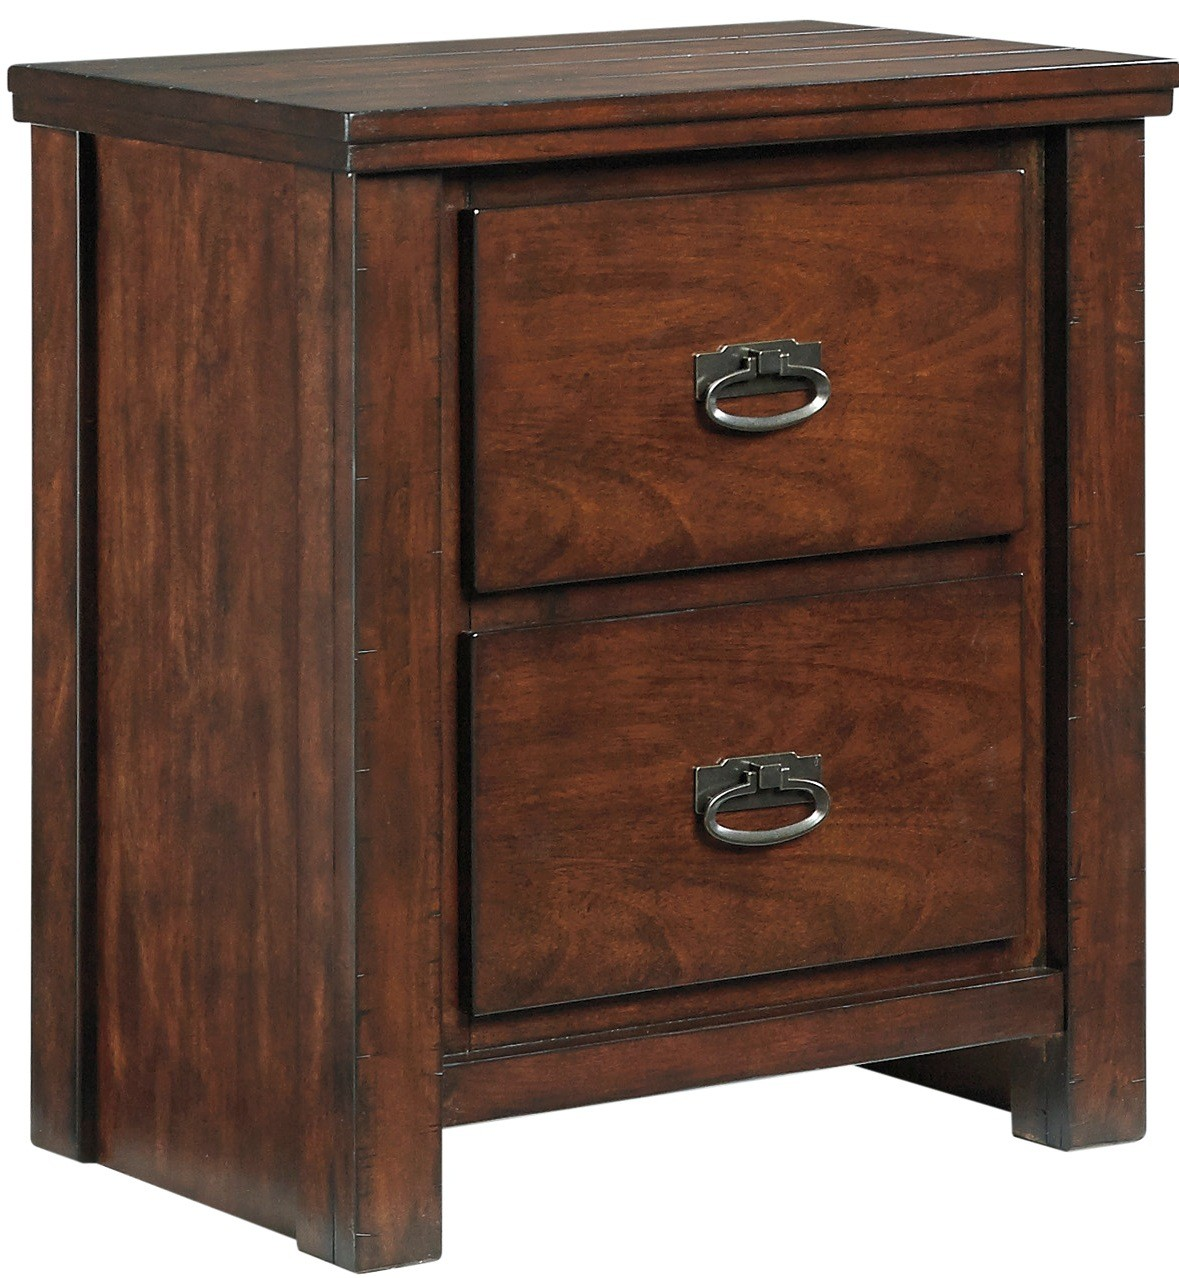 Ladiville two drawer night stand from ashley b567 92 for Affordable furniture ville platte la